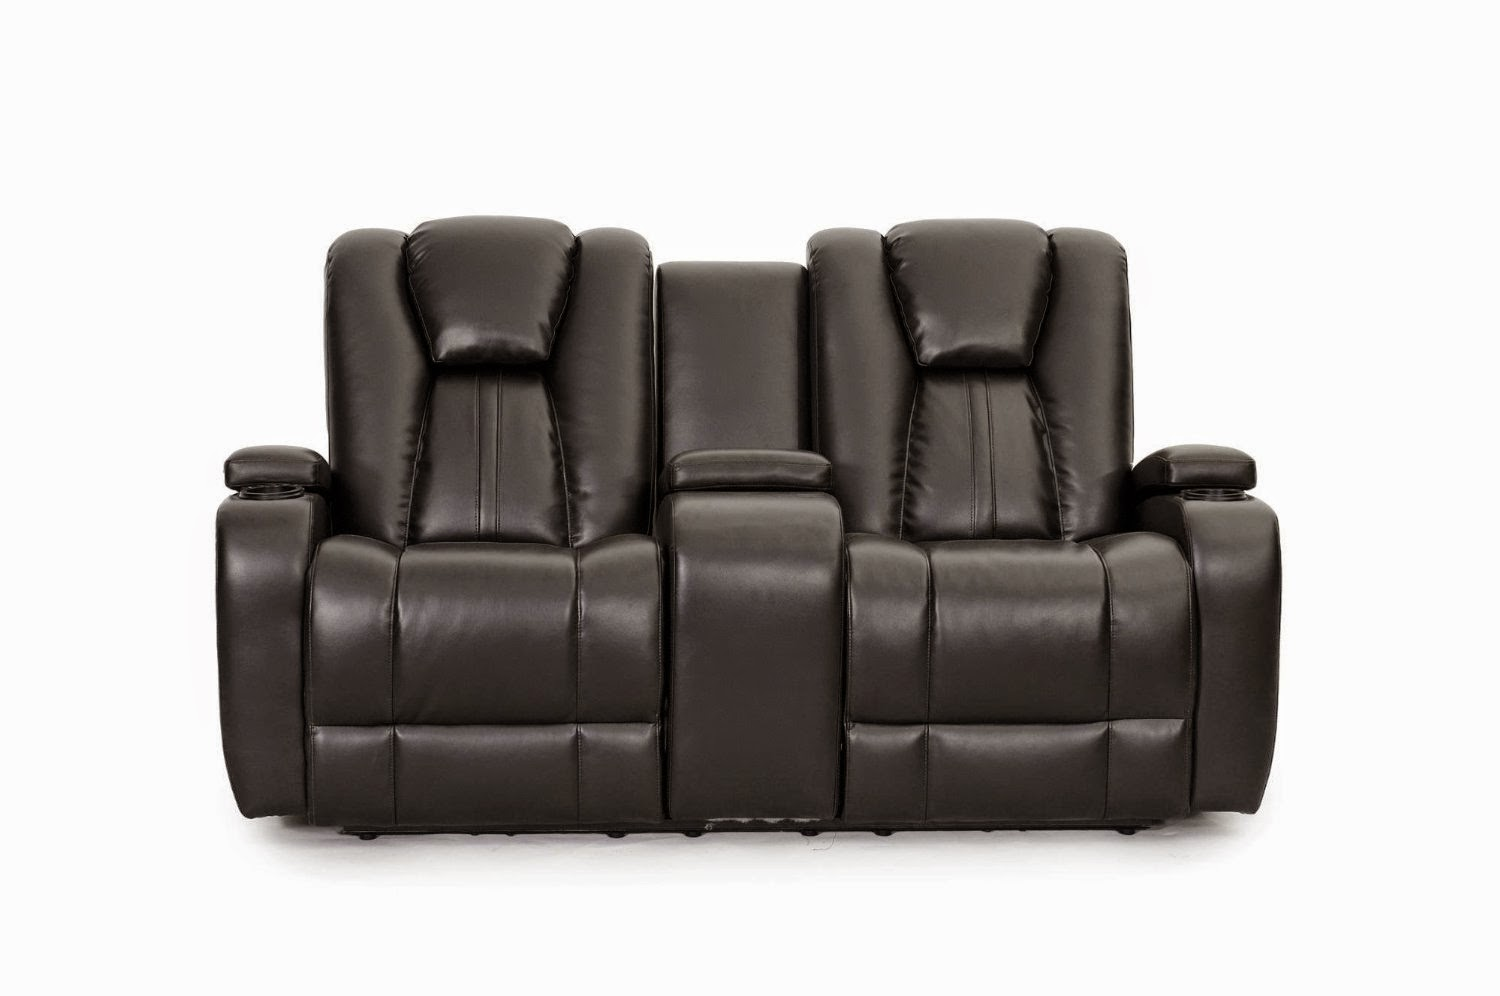 Double Reclining Sofa With Fold Down Table Extra Large Leather Sofas Tray Recliner For